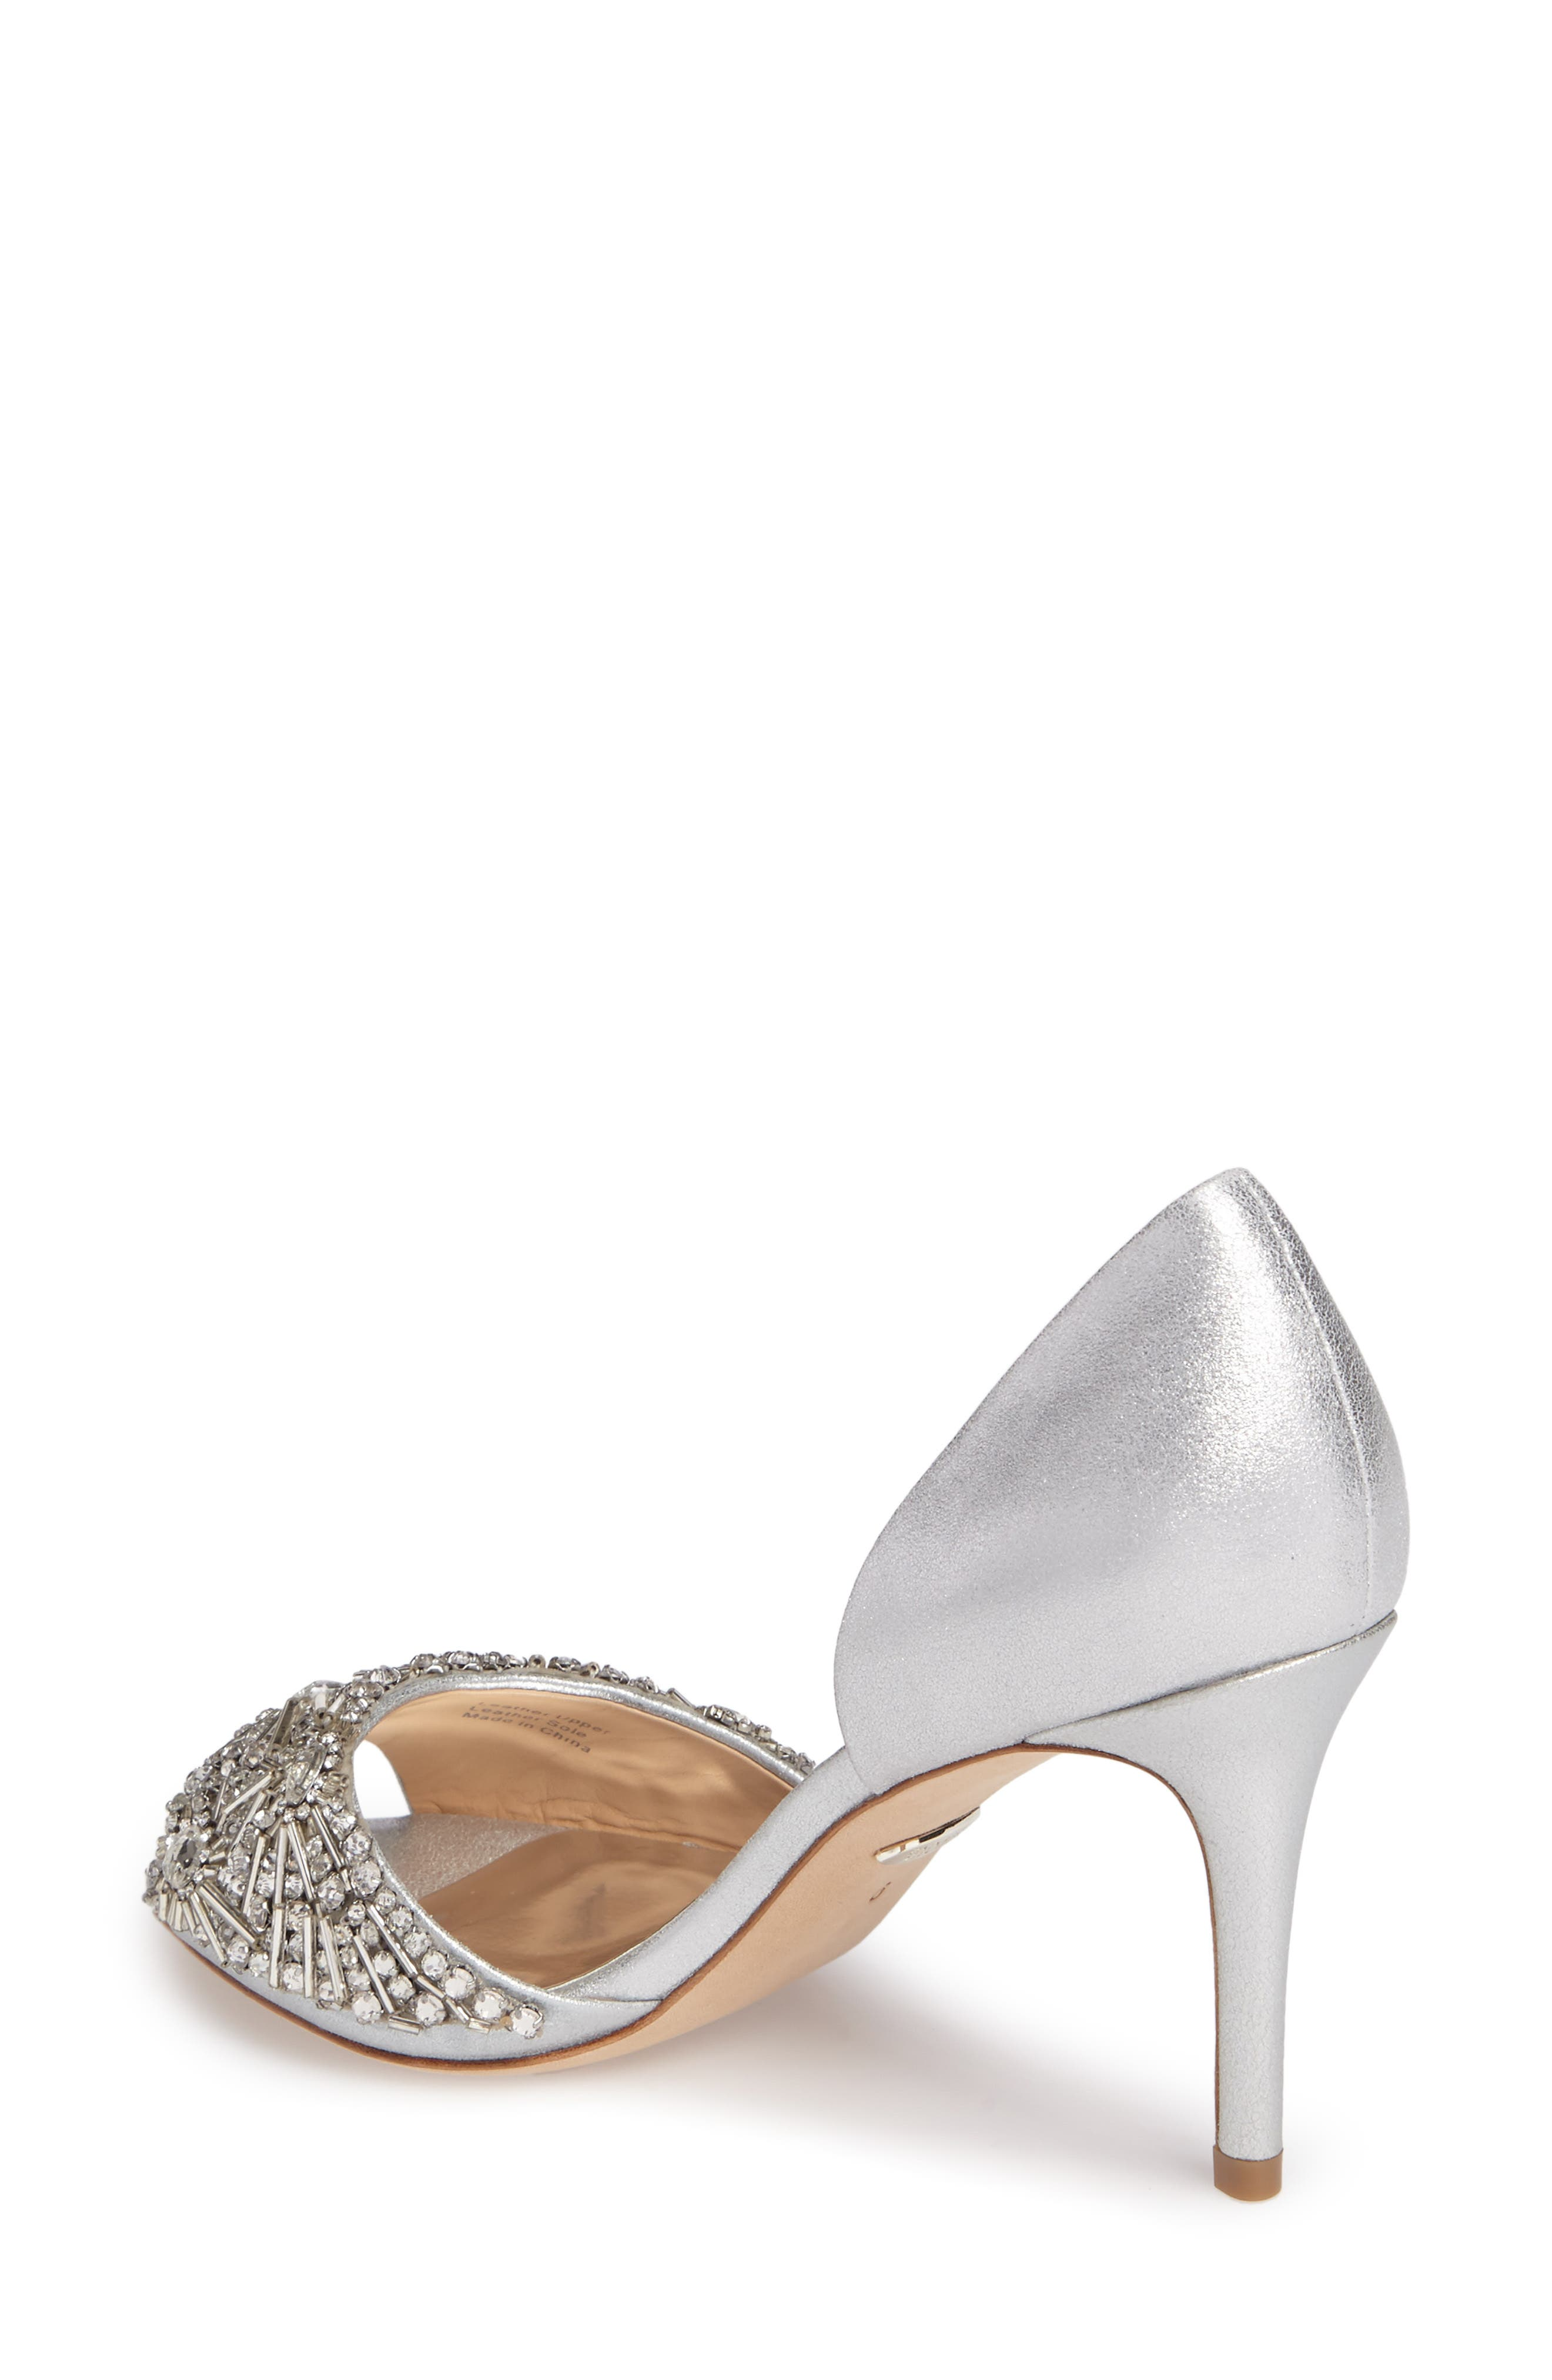 Maria Embellished d'Orsay Pump,                             Alternate thumbnail 8, color,